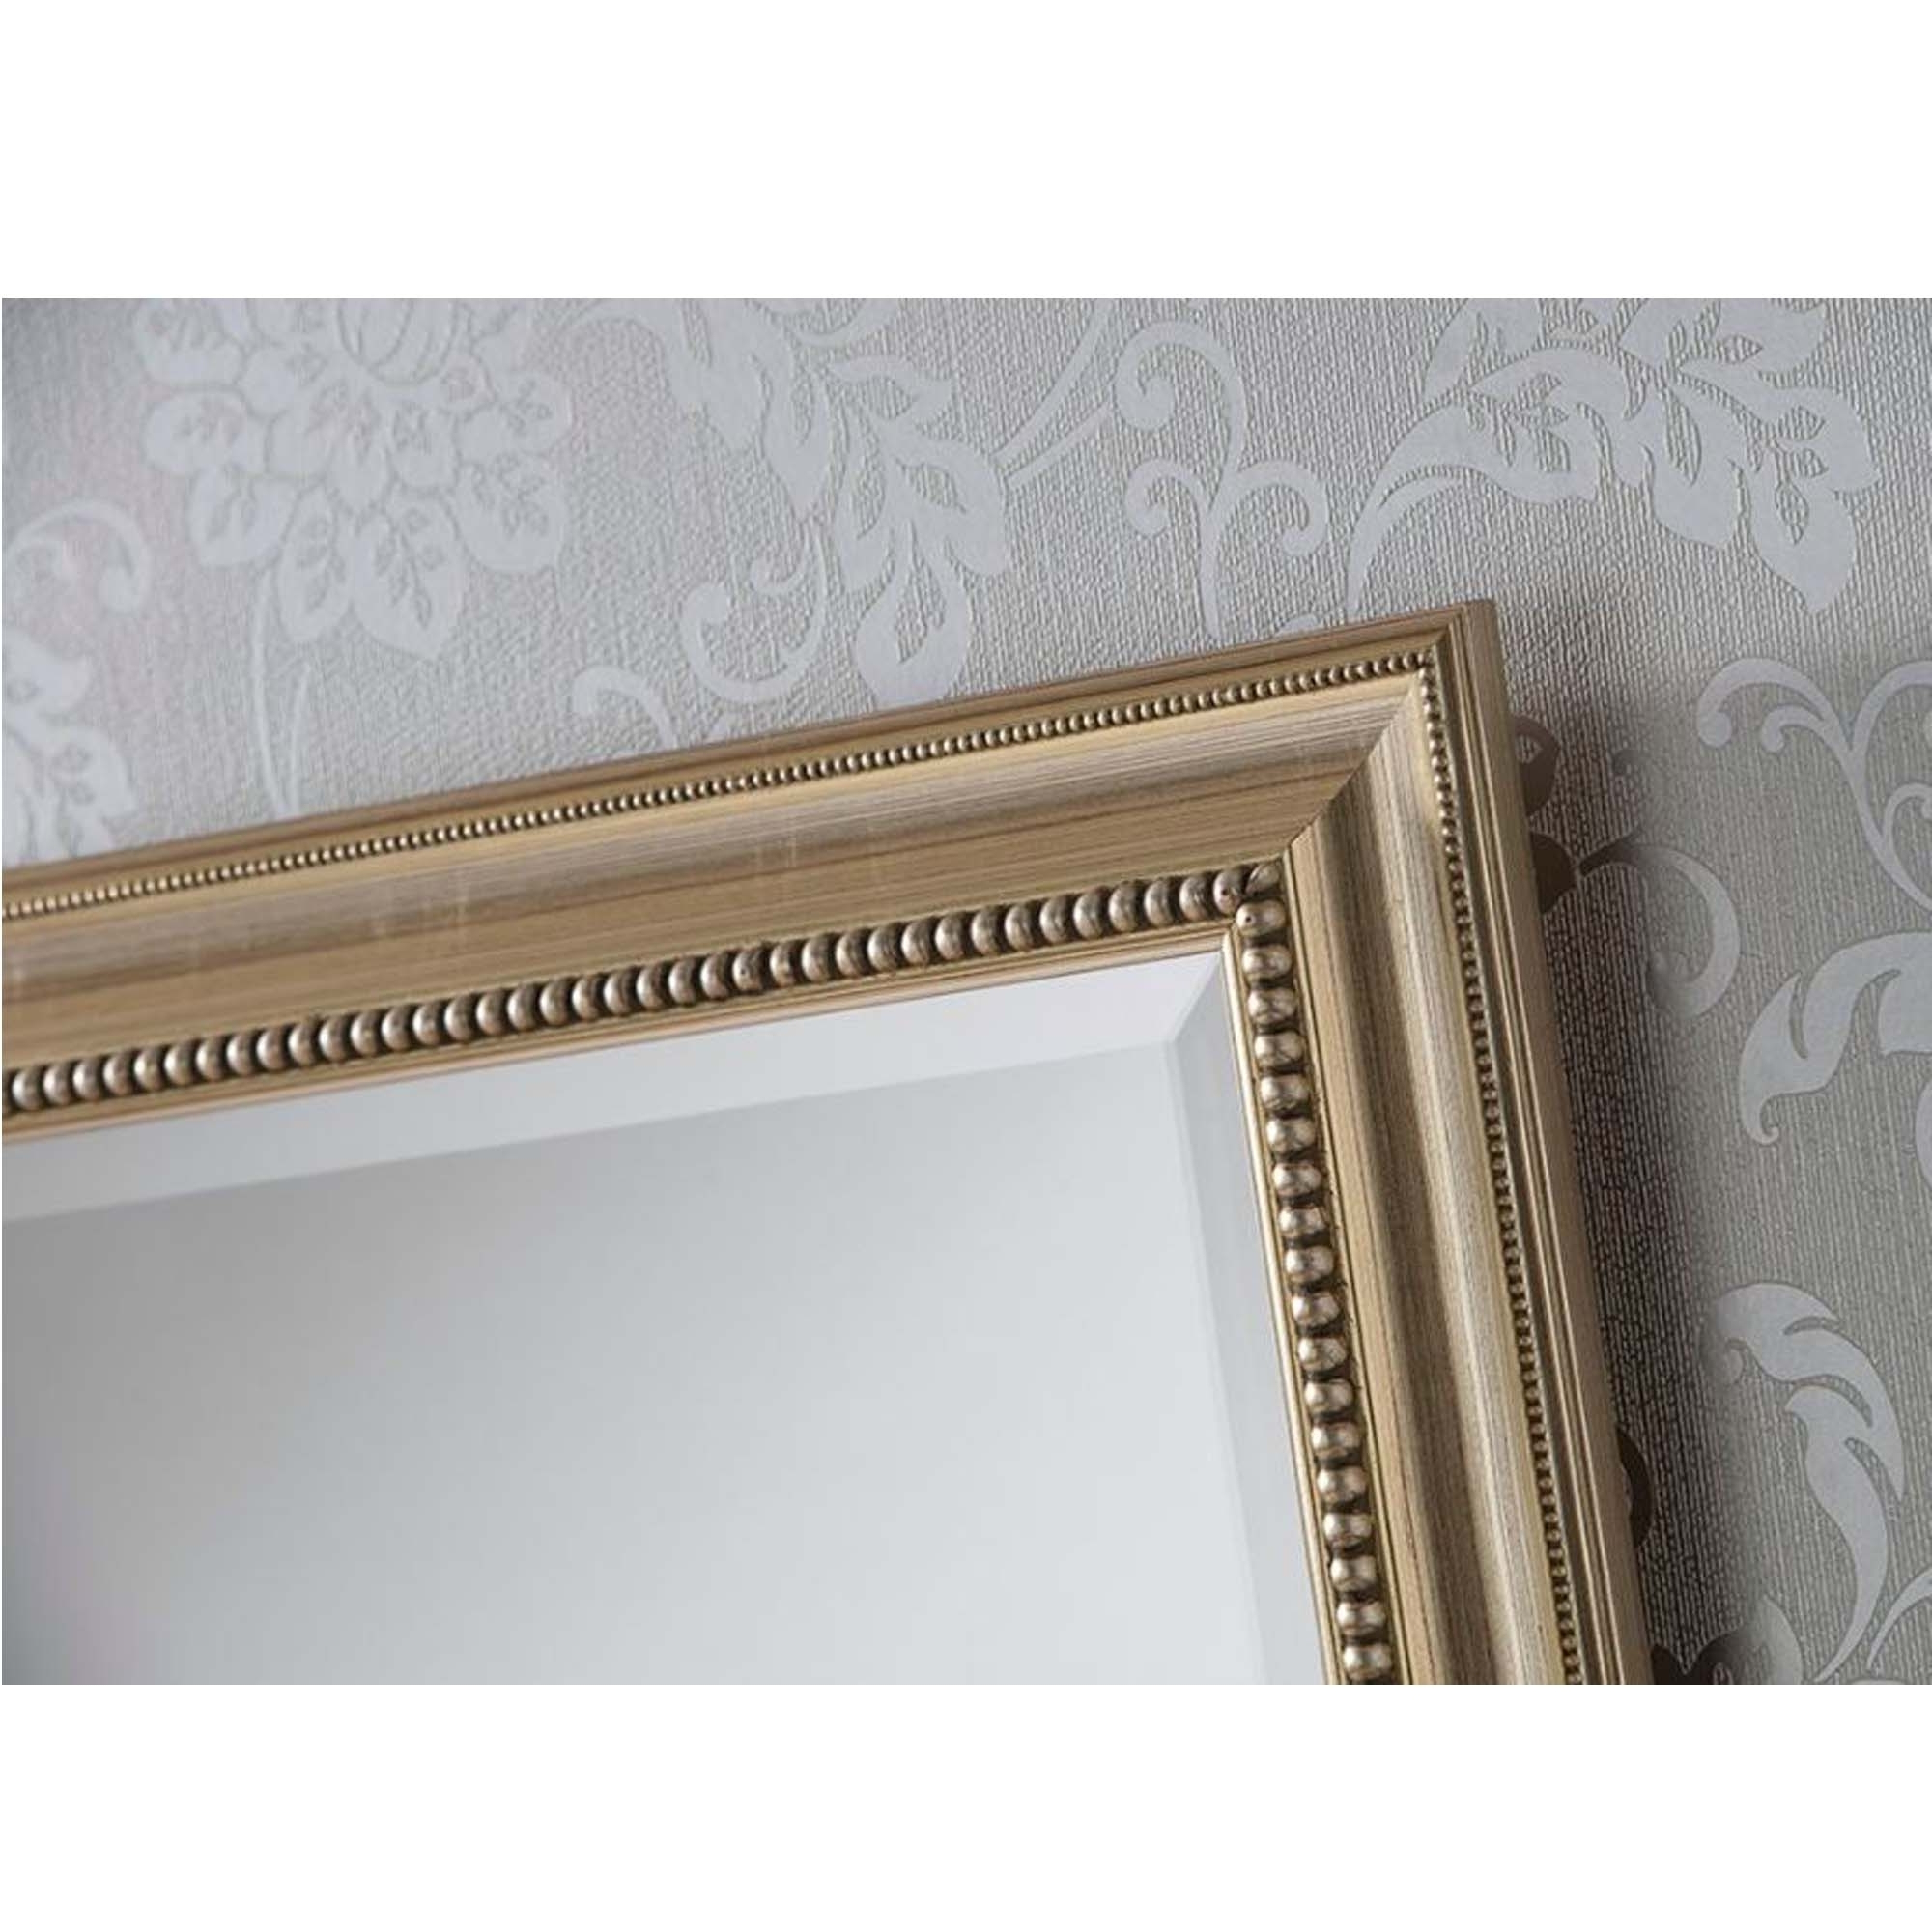 Widely Used Ornate Silver Beaded Rectangular Wall Mirror Regarding Silver Beaded Wall Mirrors (View 20 of 20)